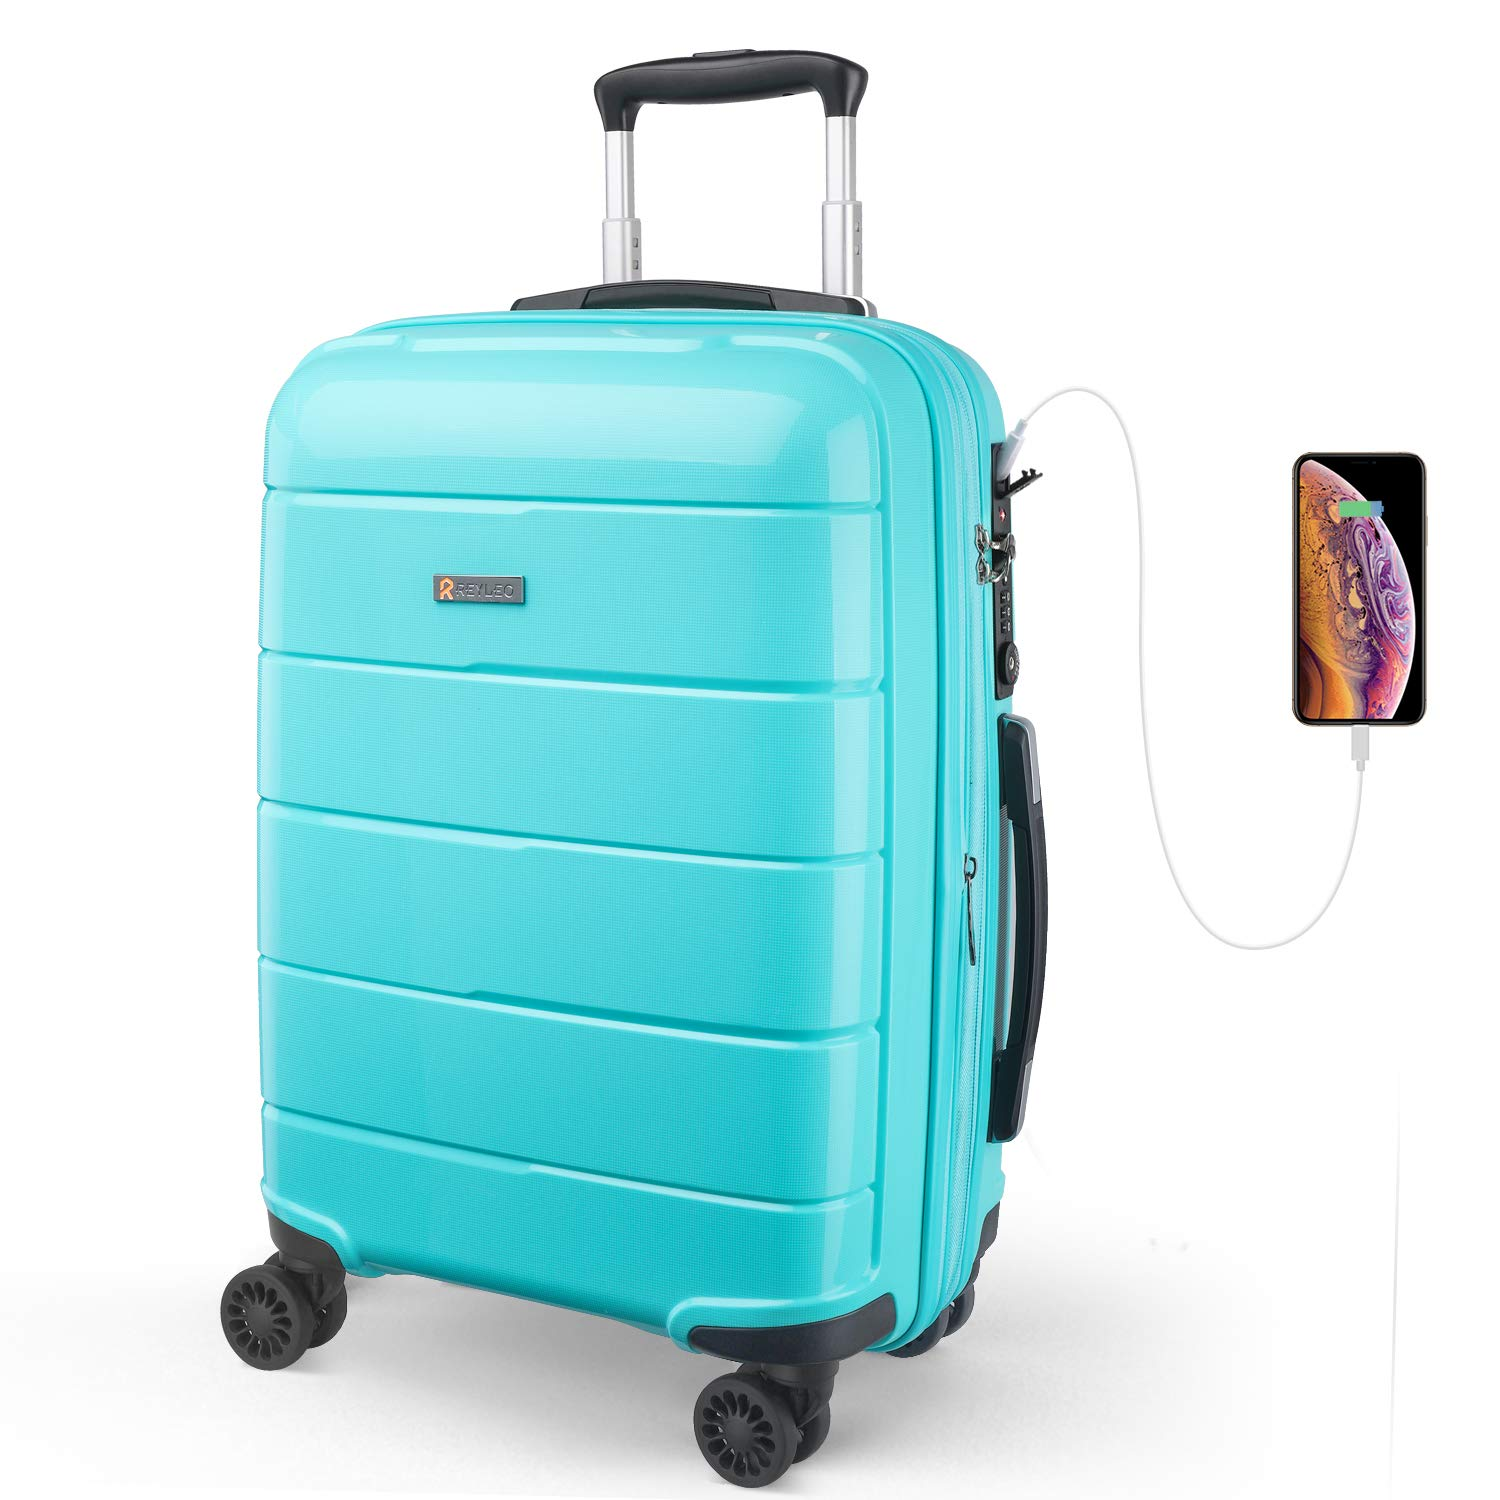 REYLEO Expandable Luggage 20 Inch PP Carry on Luggage Travel Suitcase with USB Charging Port Built-in TSA Lock 8 Silent Spinner Wheels Side Handle, Blue by REYLEO